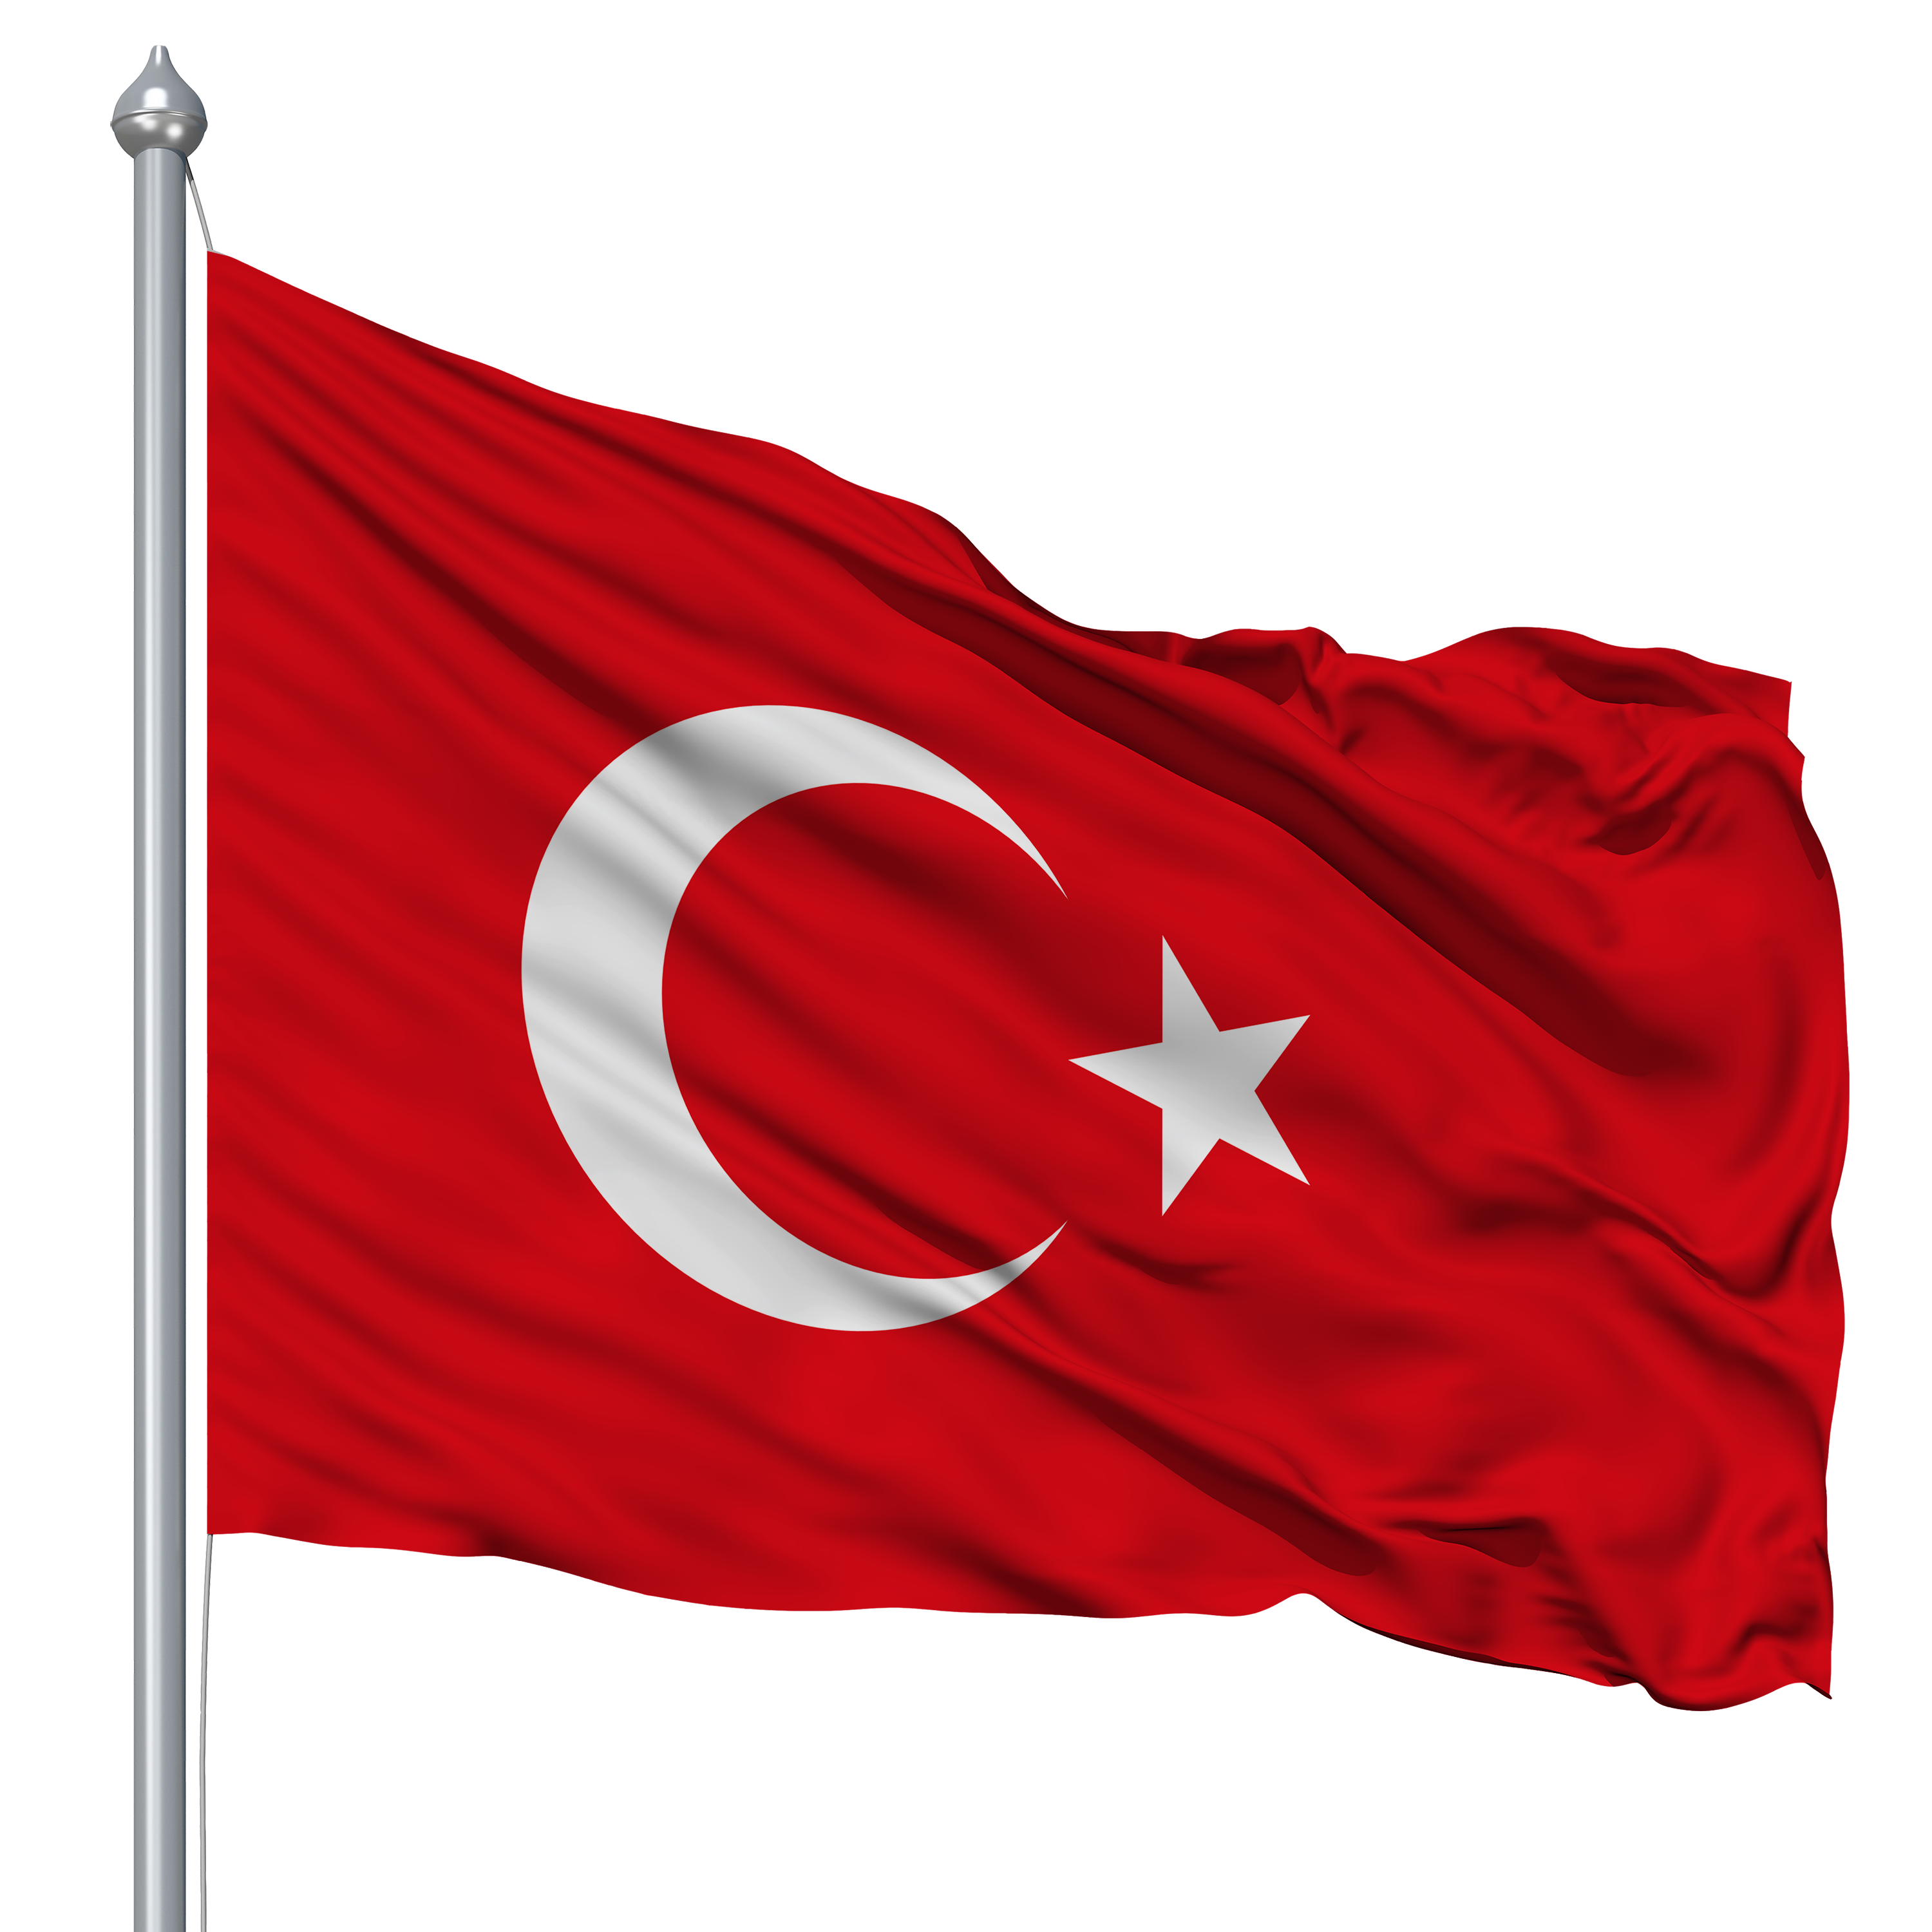 Turkey Flag In Png image #45678